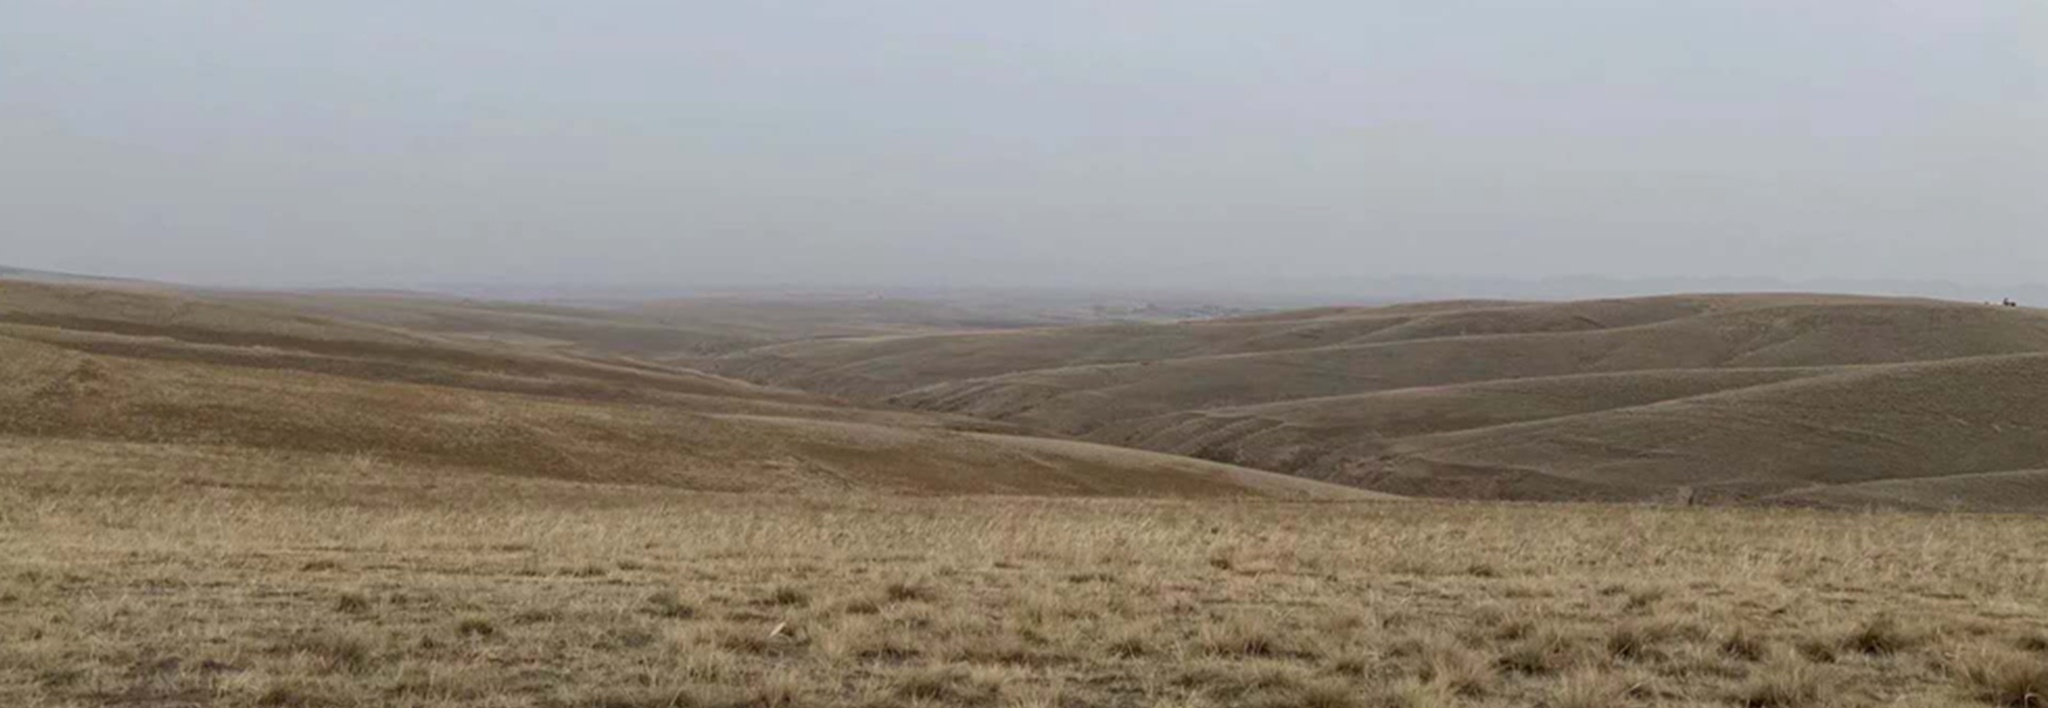 Clenergy Ground-mount 500MW Solar Plant Site in Guyang- Inner Mongolia-China